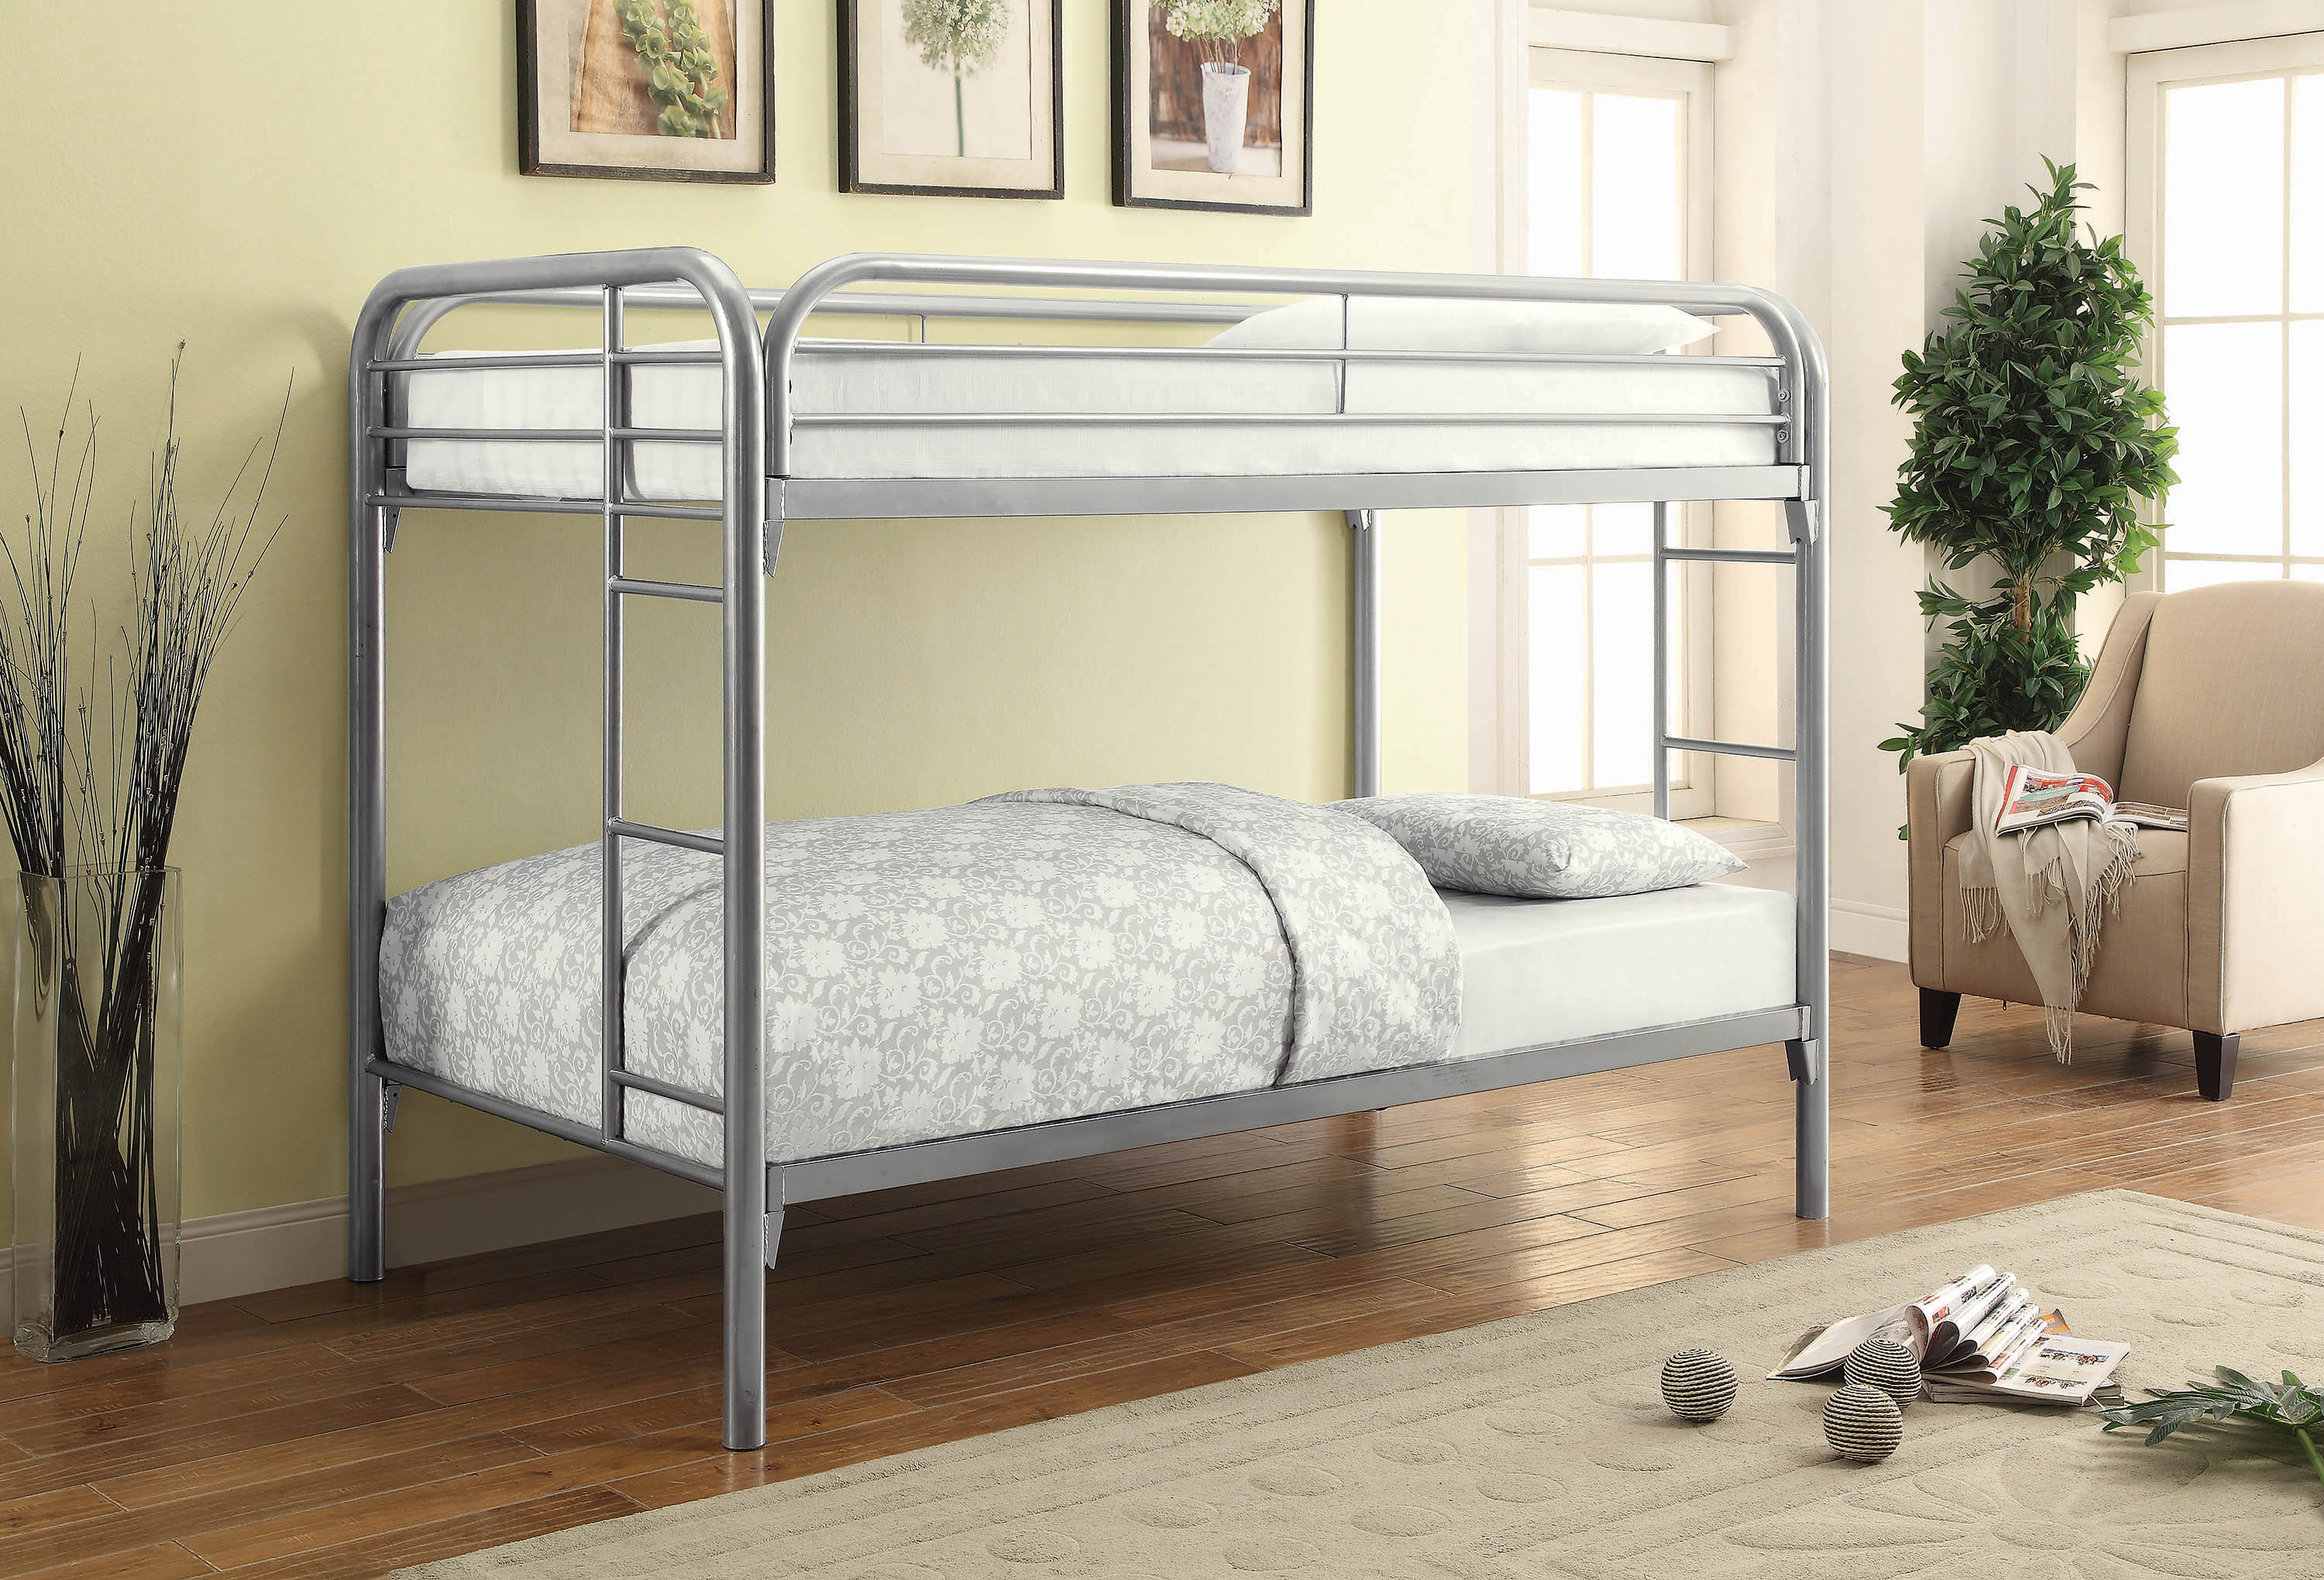 Image result for twin bunk bed